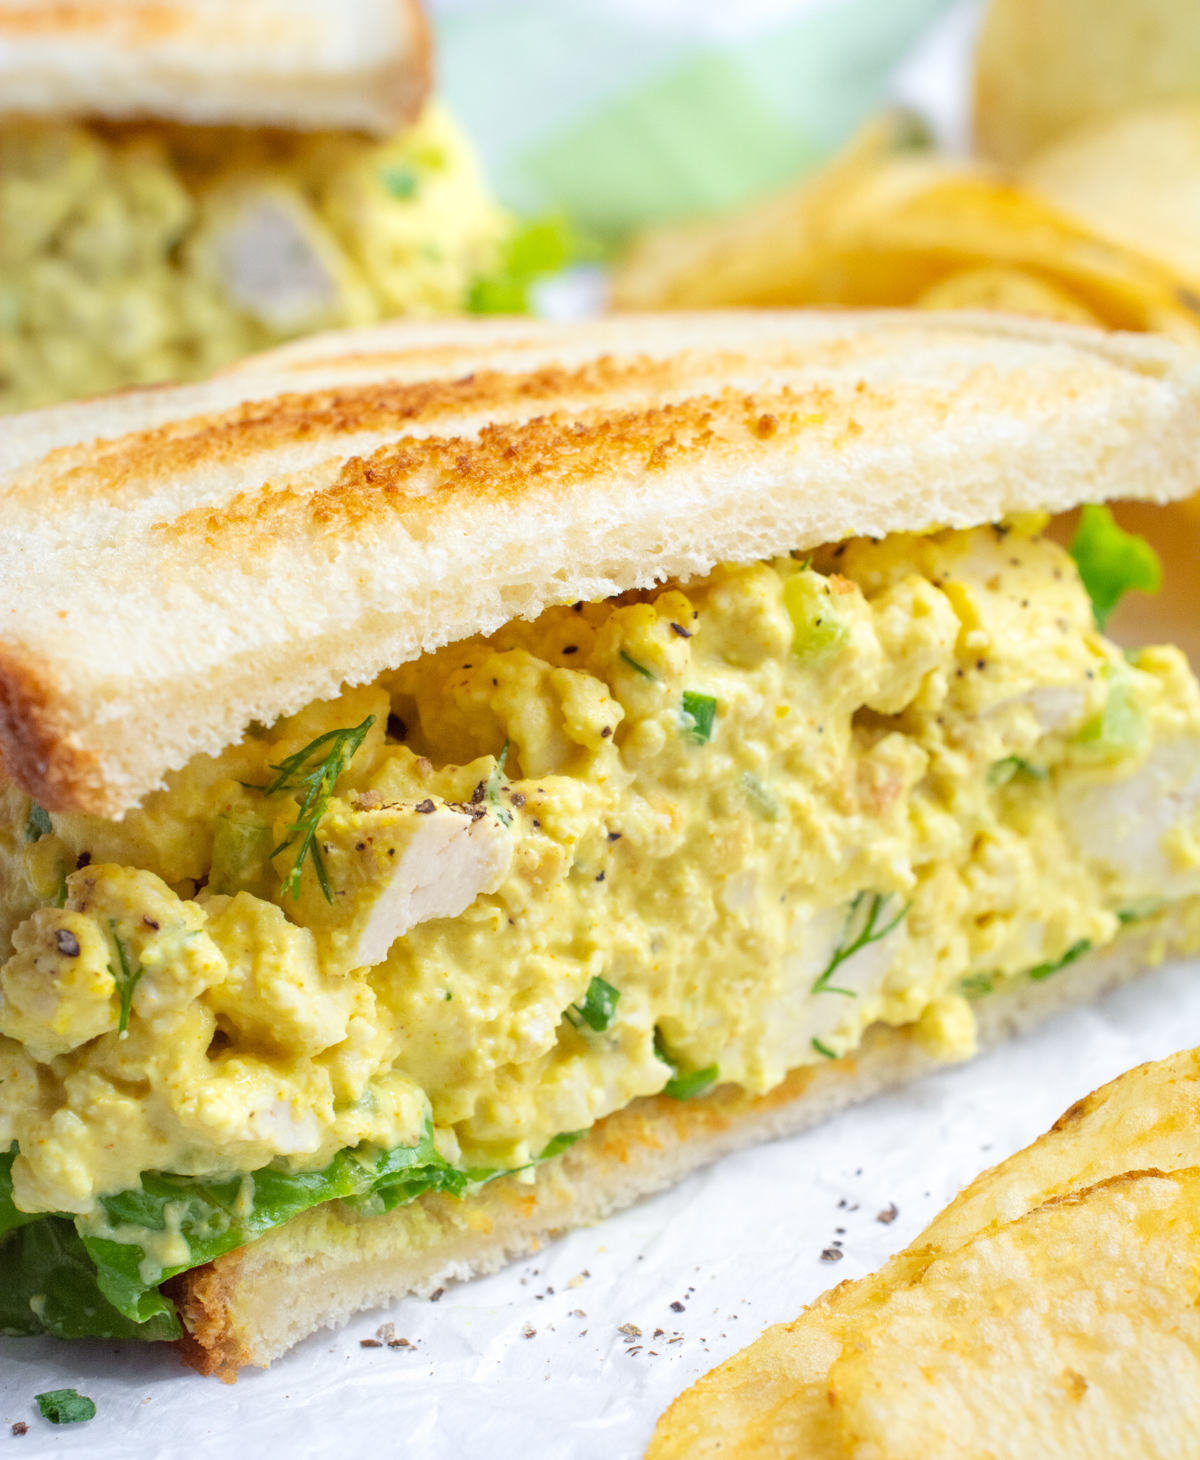 Half of a vegan egg salad sandwich.